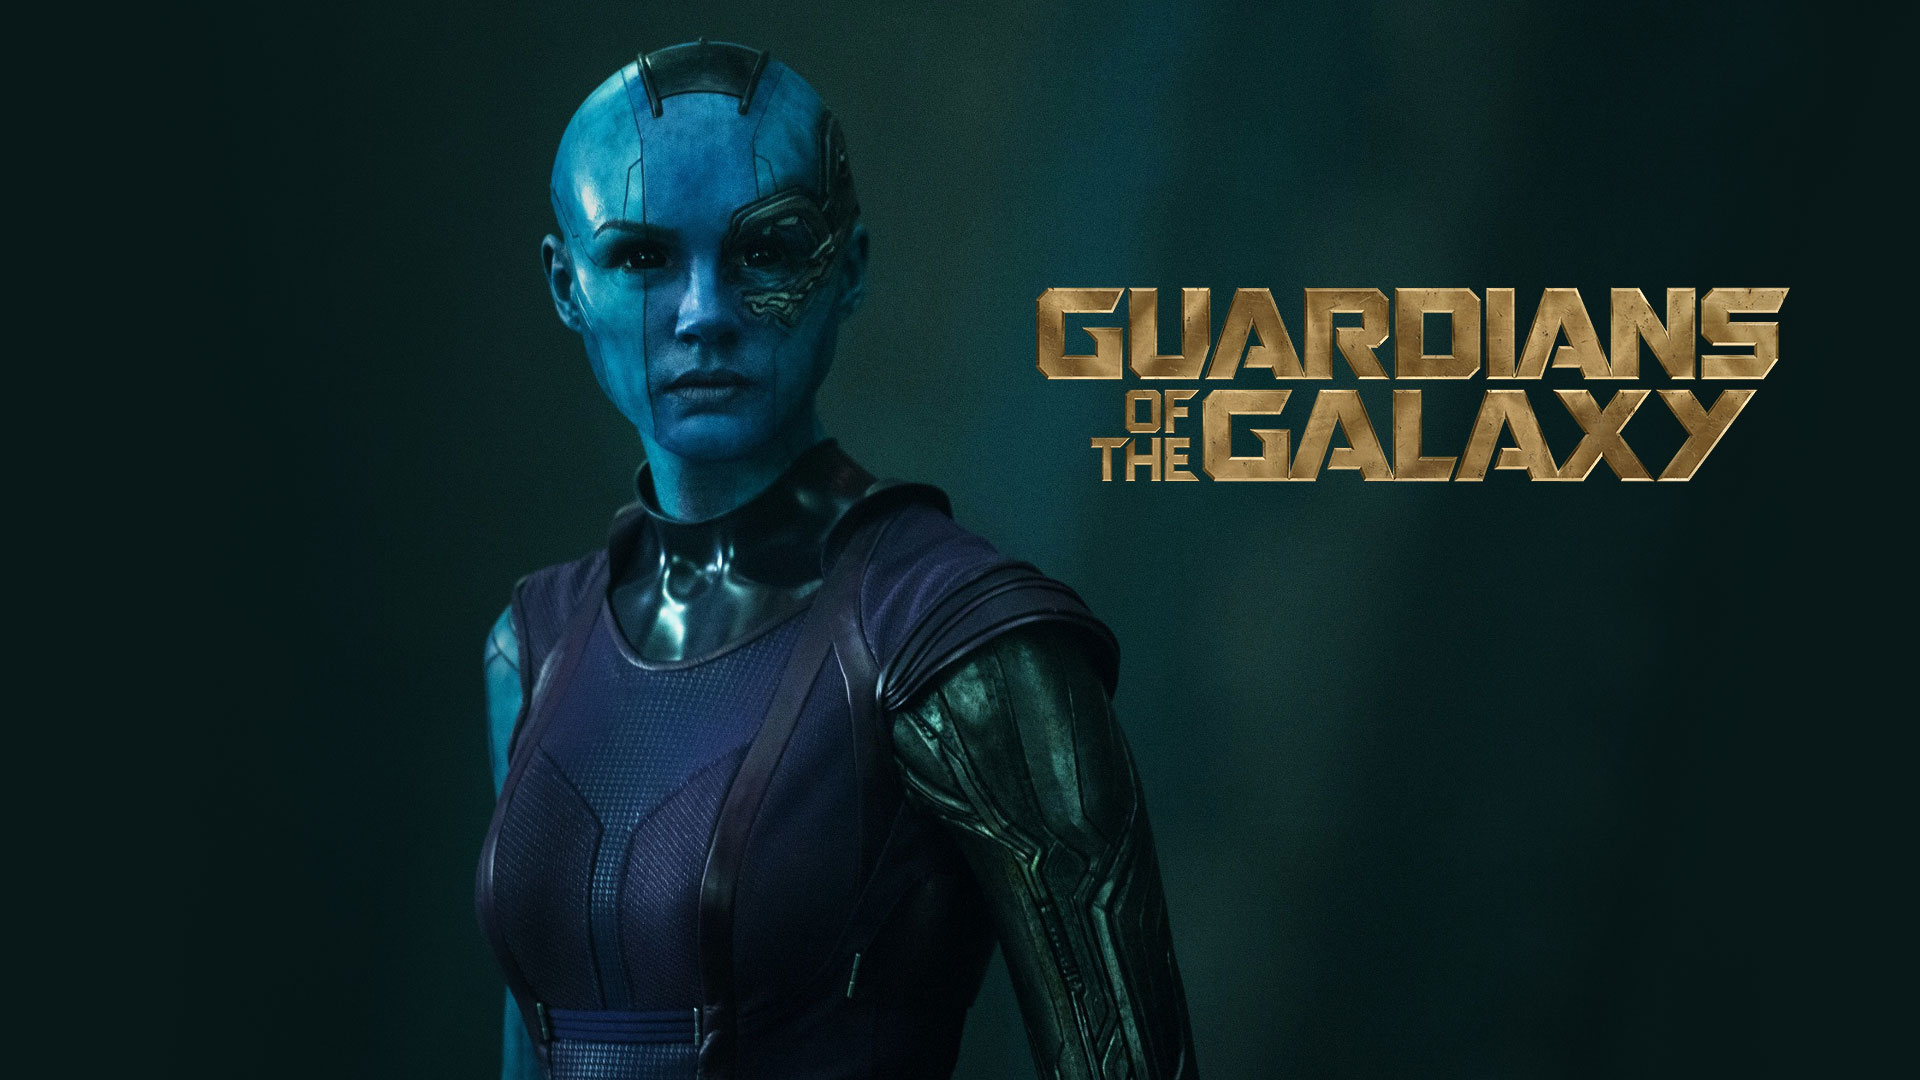 Guardians Of The Galaxy HD Desktop Wallpapers 1920x1080